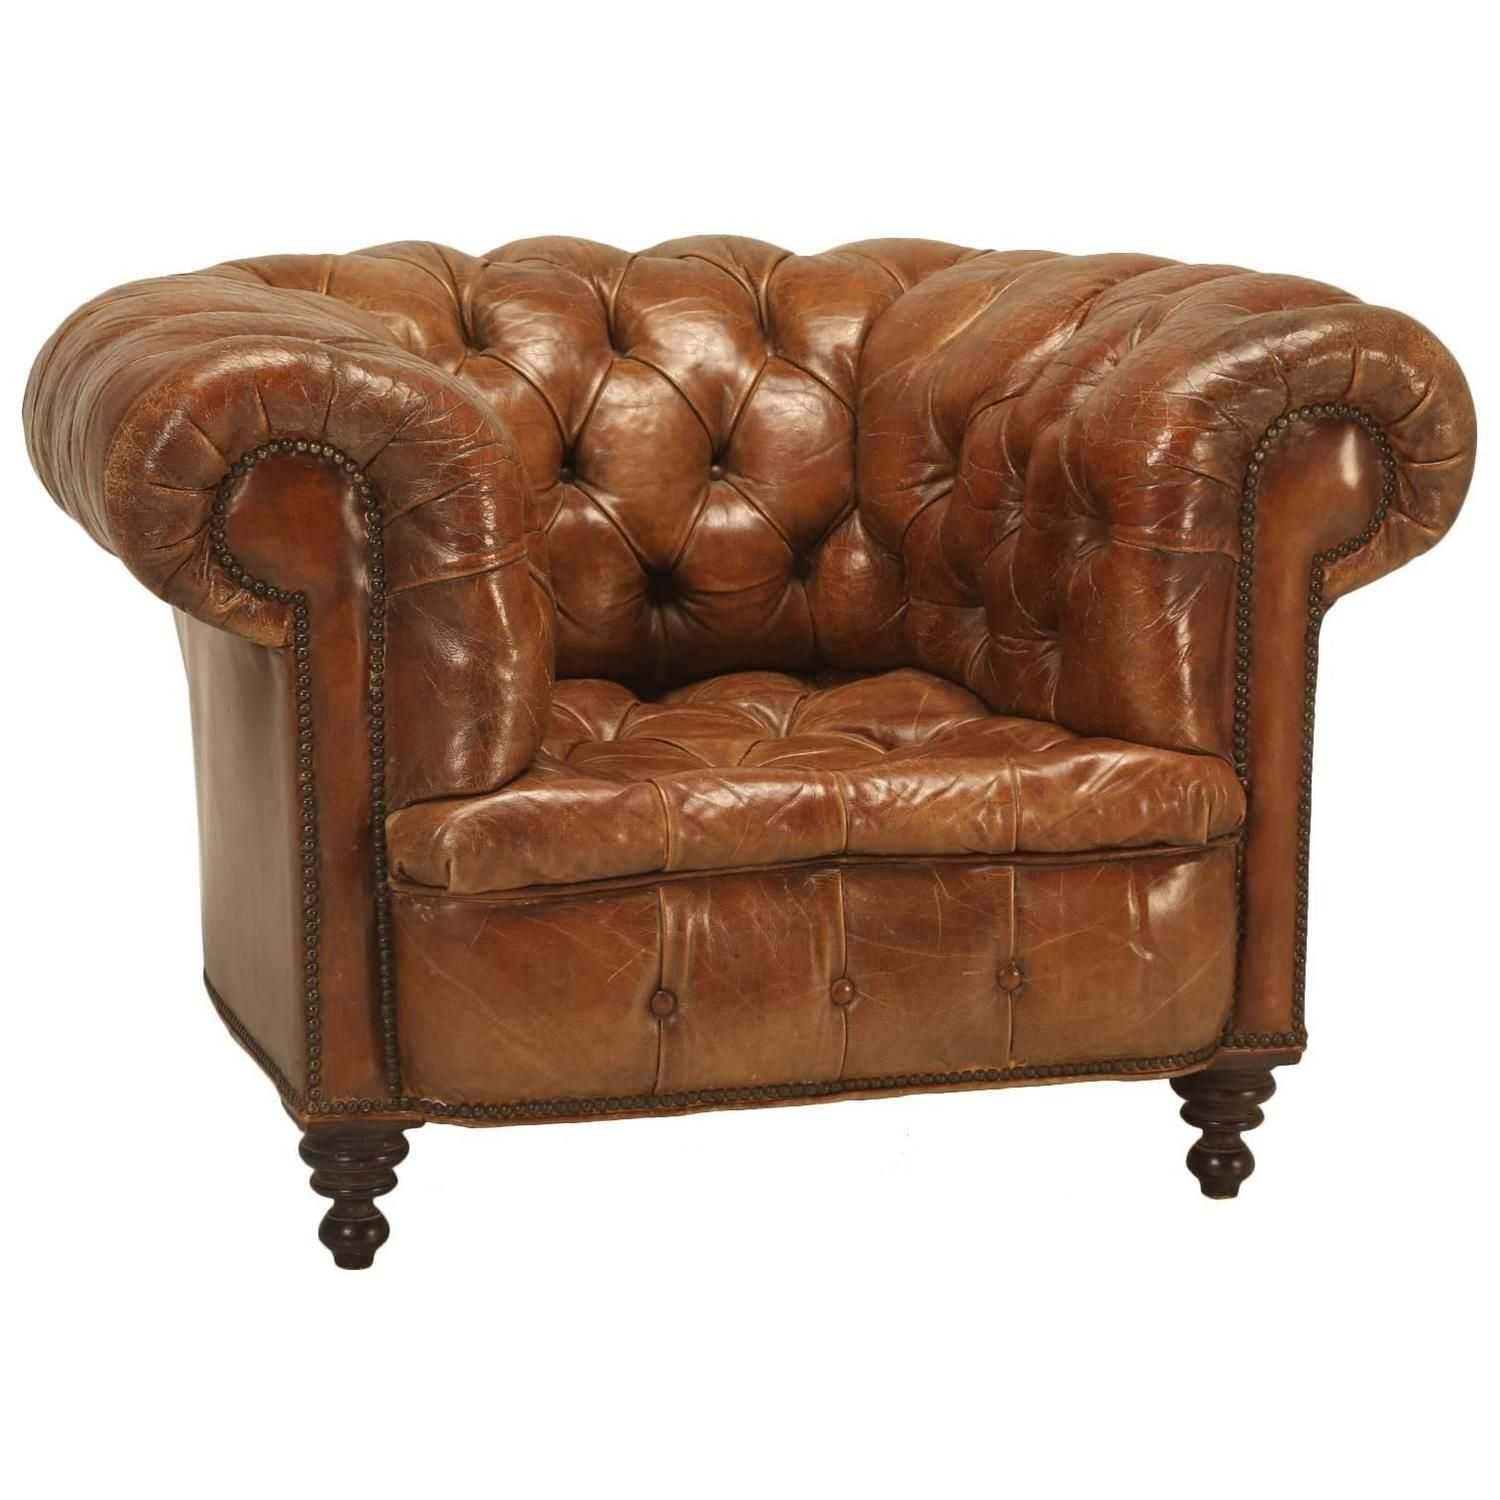 Antique Chesterfield Chair In Original Leather See More Antique And Modern Armchairs At Https Www 1stdi Chesterfield Chair Club Chairs Brown Leather Chairs